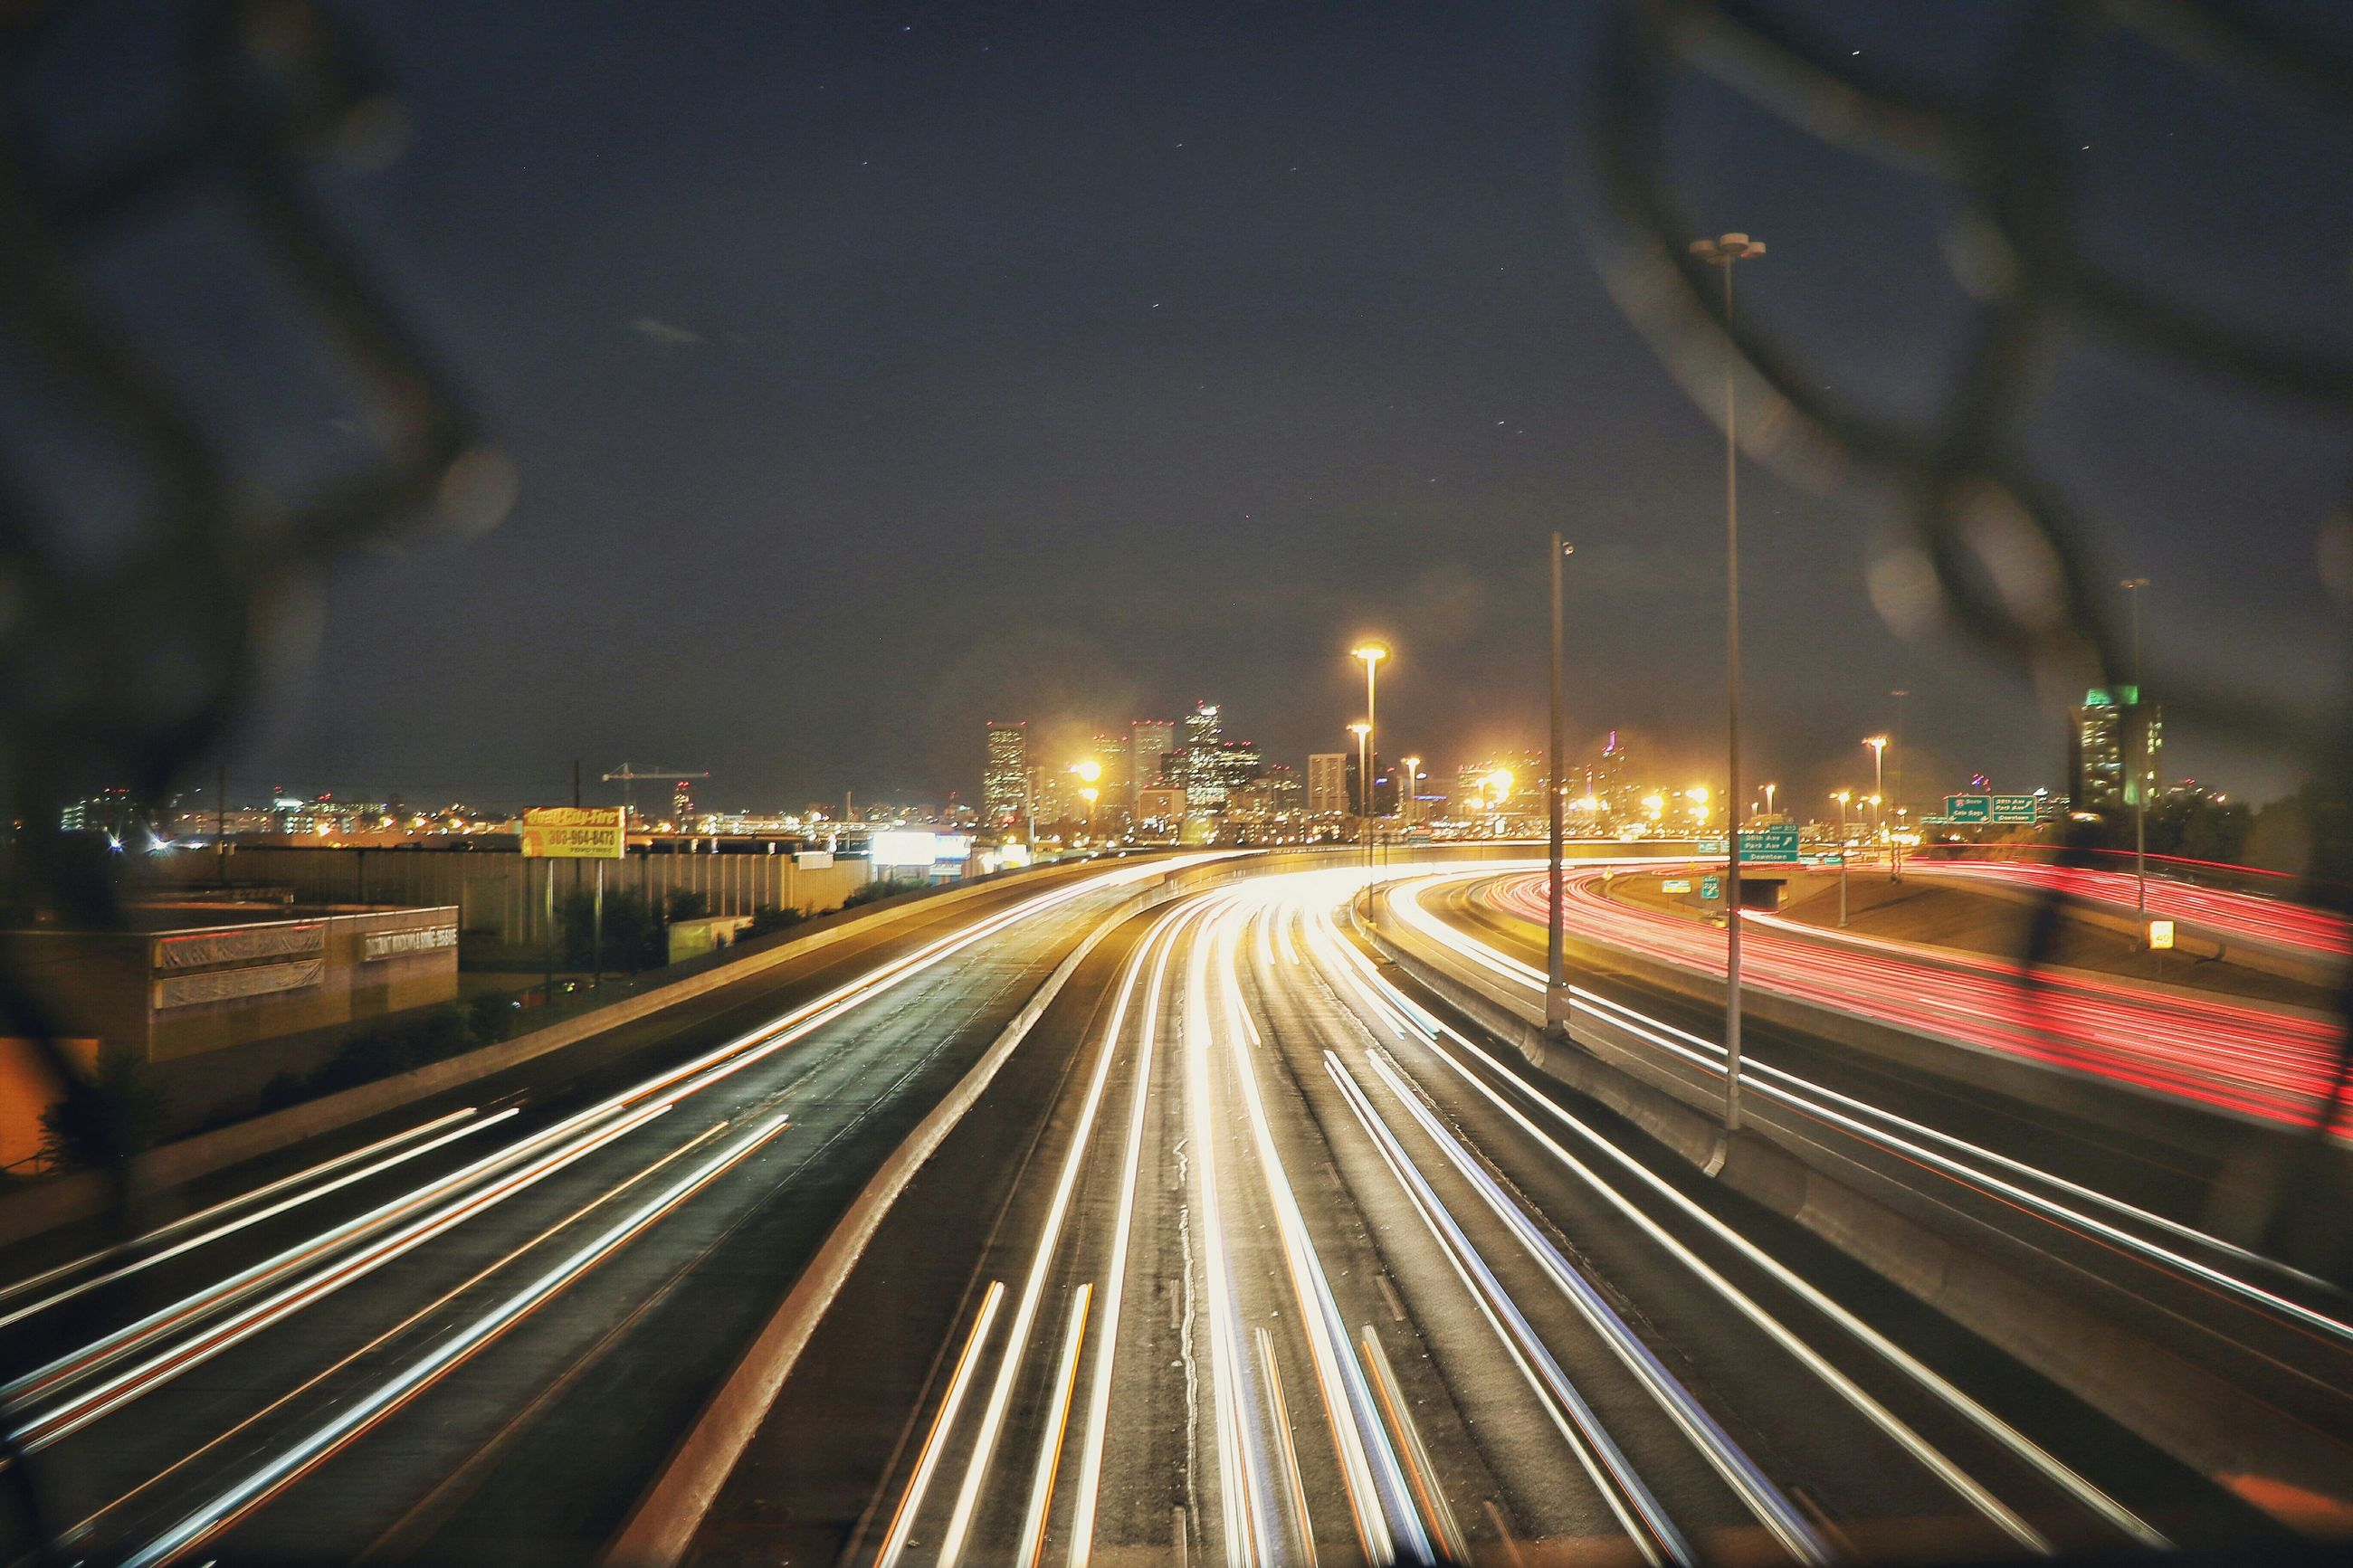 long exposure, light trail, illuminated, night, motion, transportation, speed, high angle view, road, blurred motion, street, street light, city, sky, city life, tail light, outdoors, rush hour, the way forward, journey